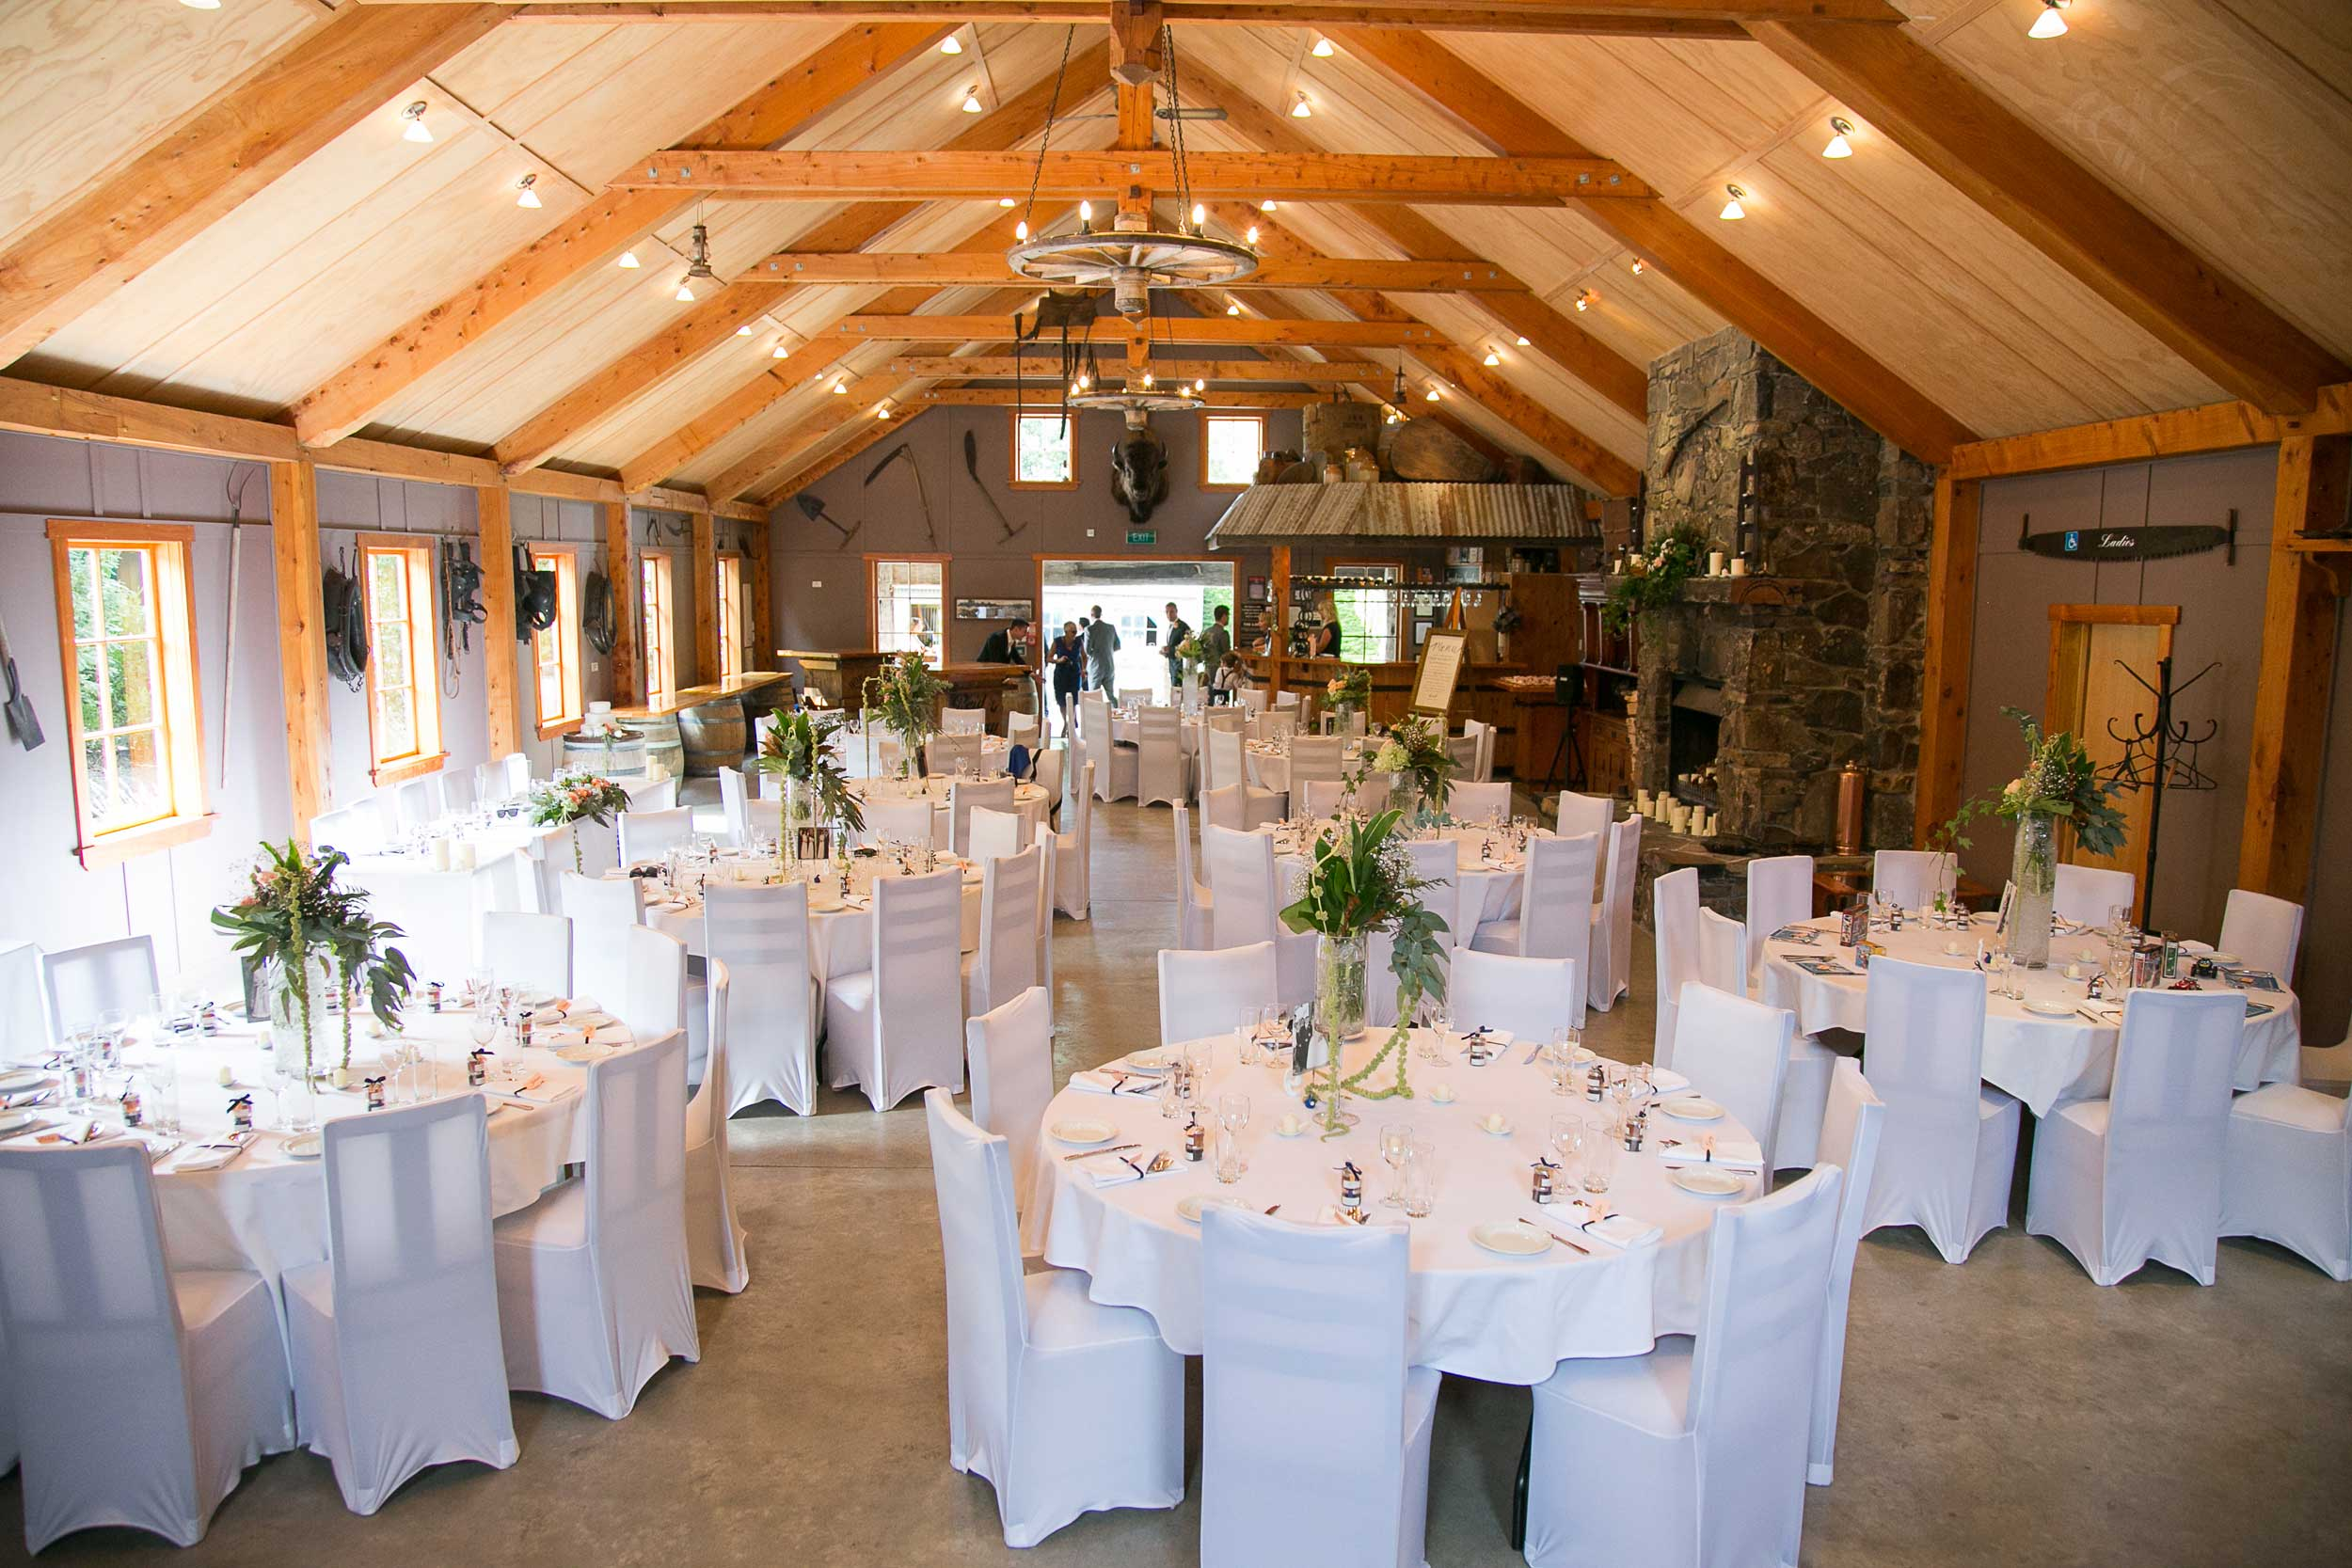 Wedding venue parties conferences dunedin otago grandview grandview gardens indoor venue junglespirit Images